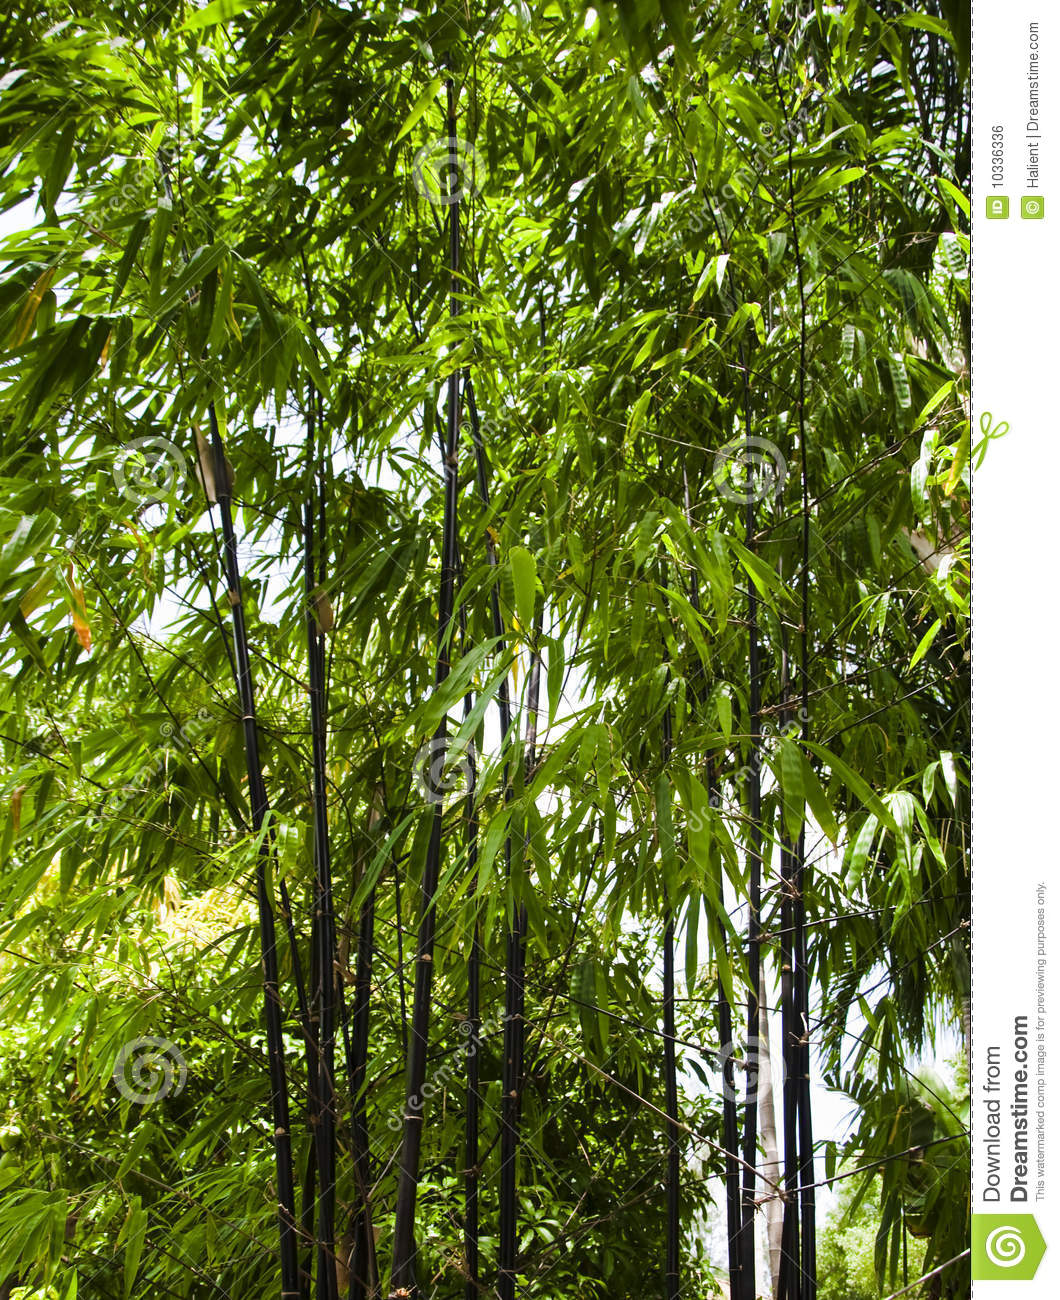 Black Bamboo Growing Outside Royalty Free Stock Image